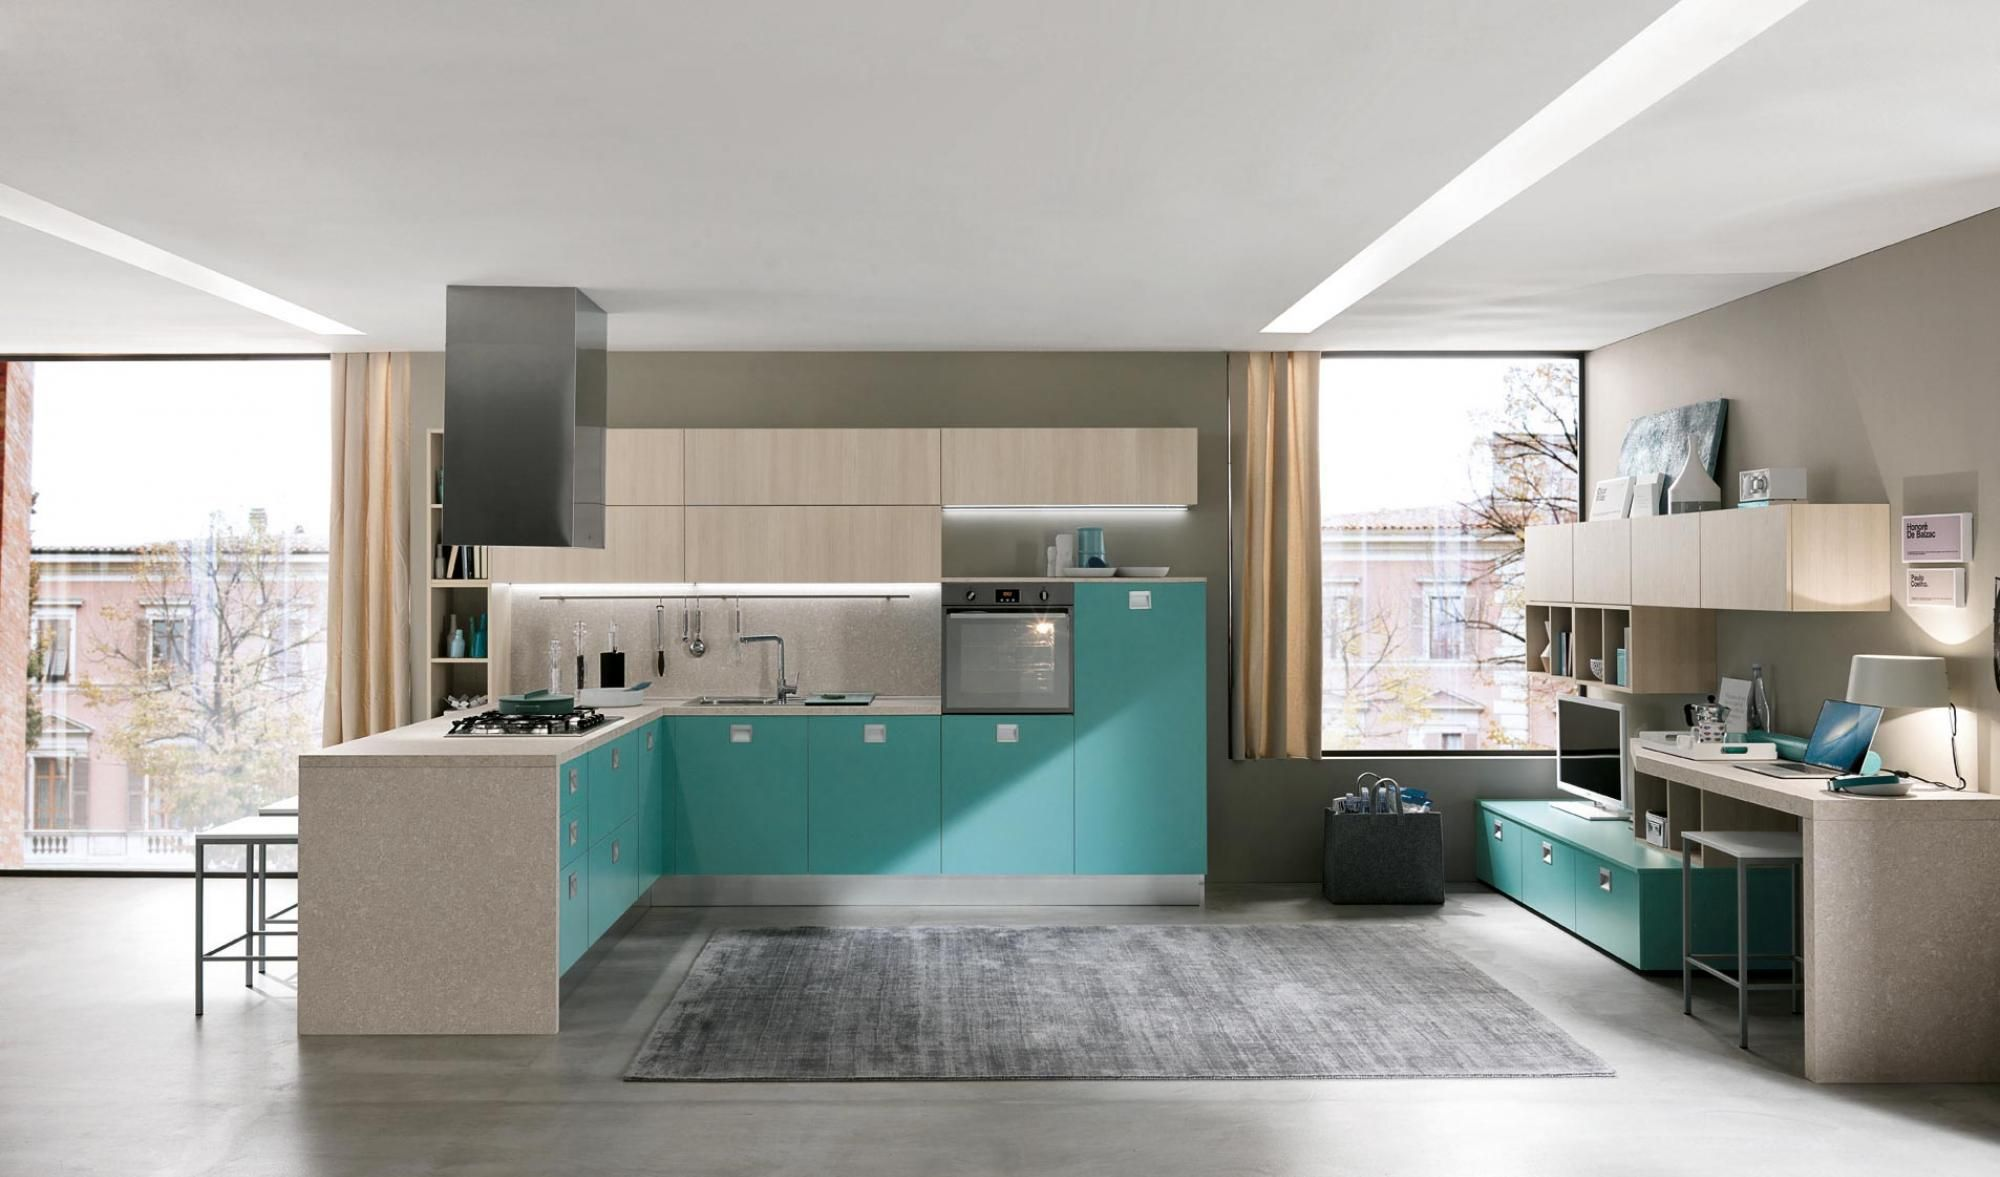 Image result for colombini casa kitchen | Kitchens | Home ...